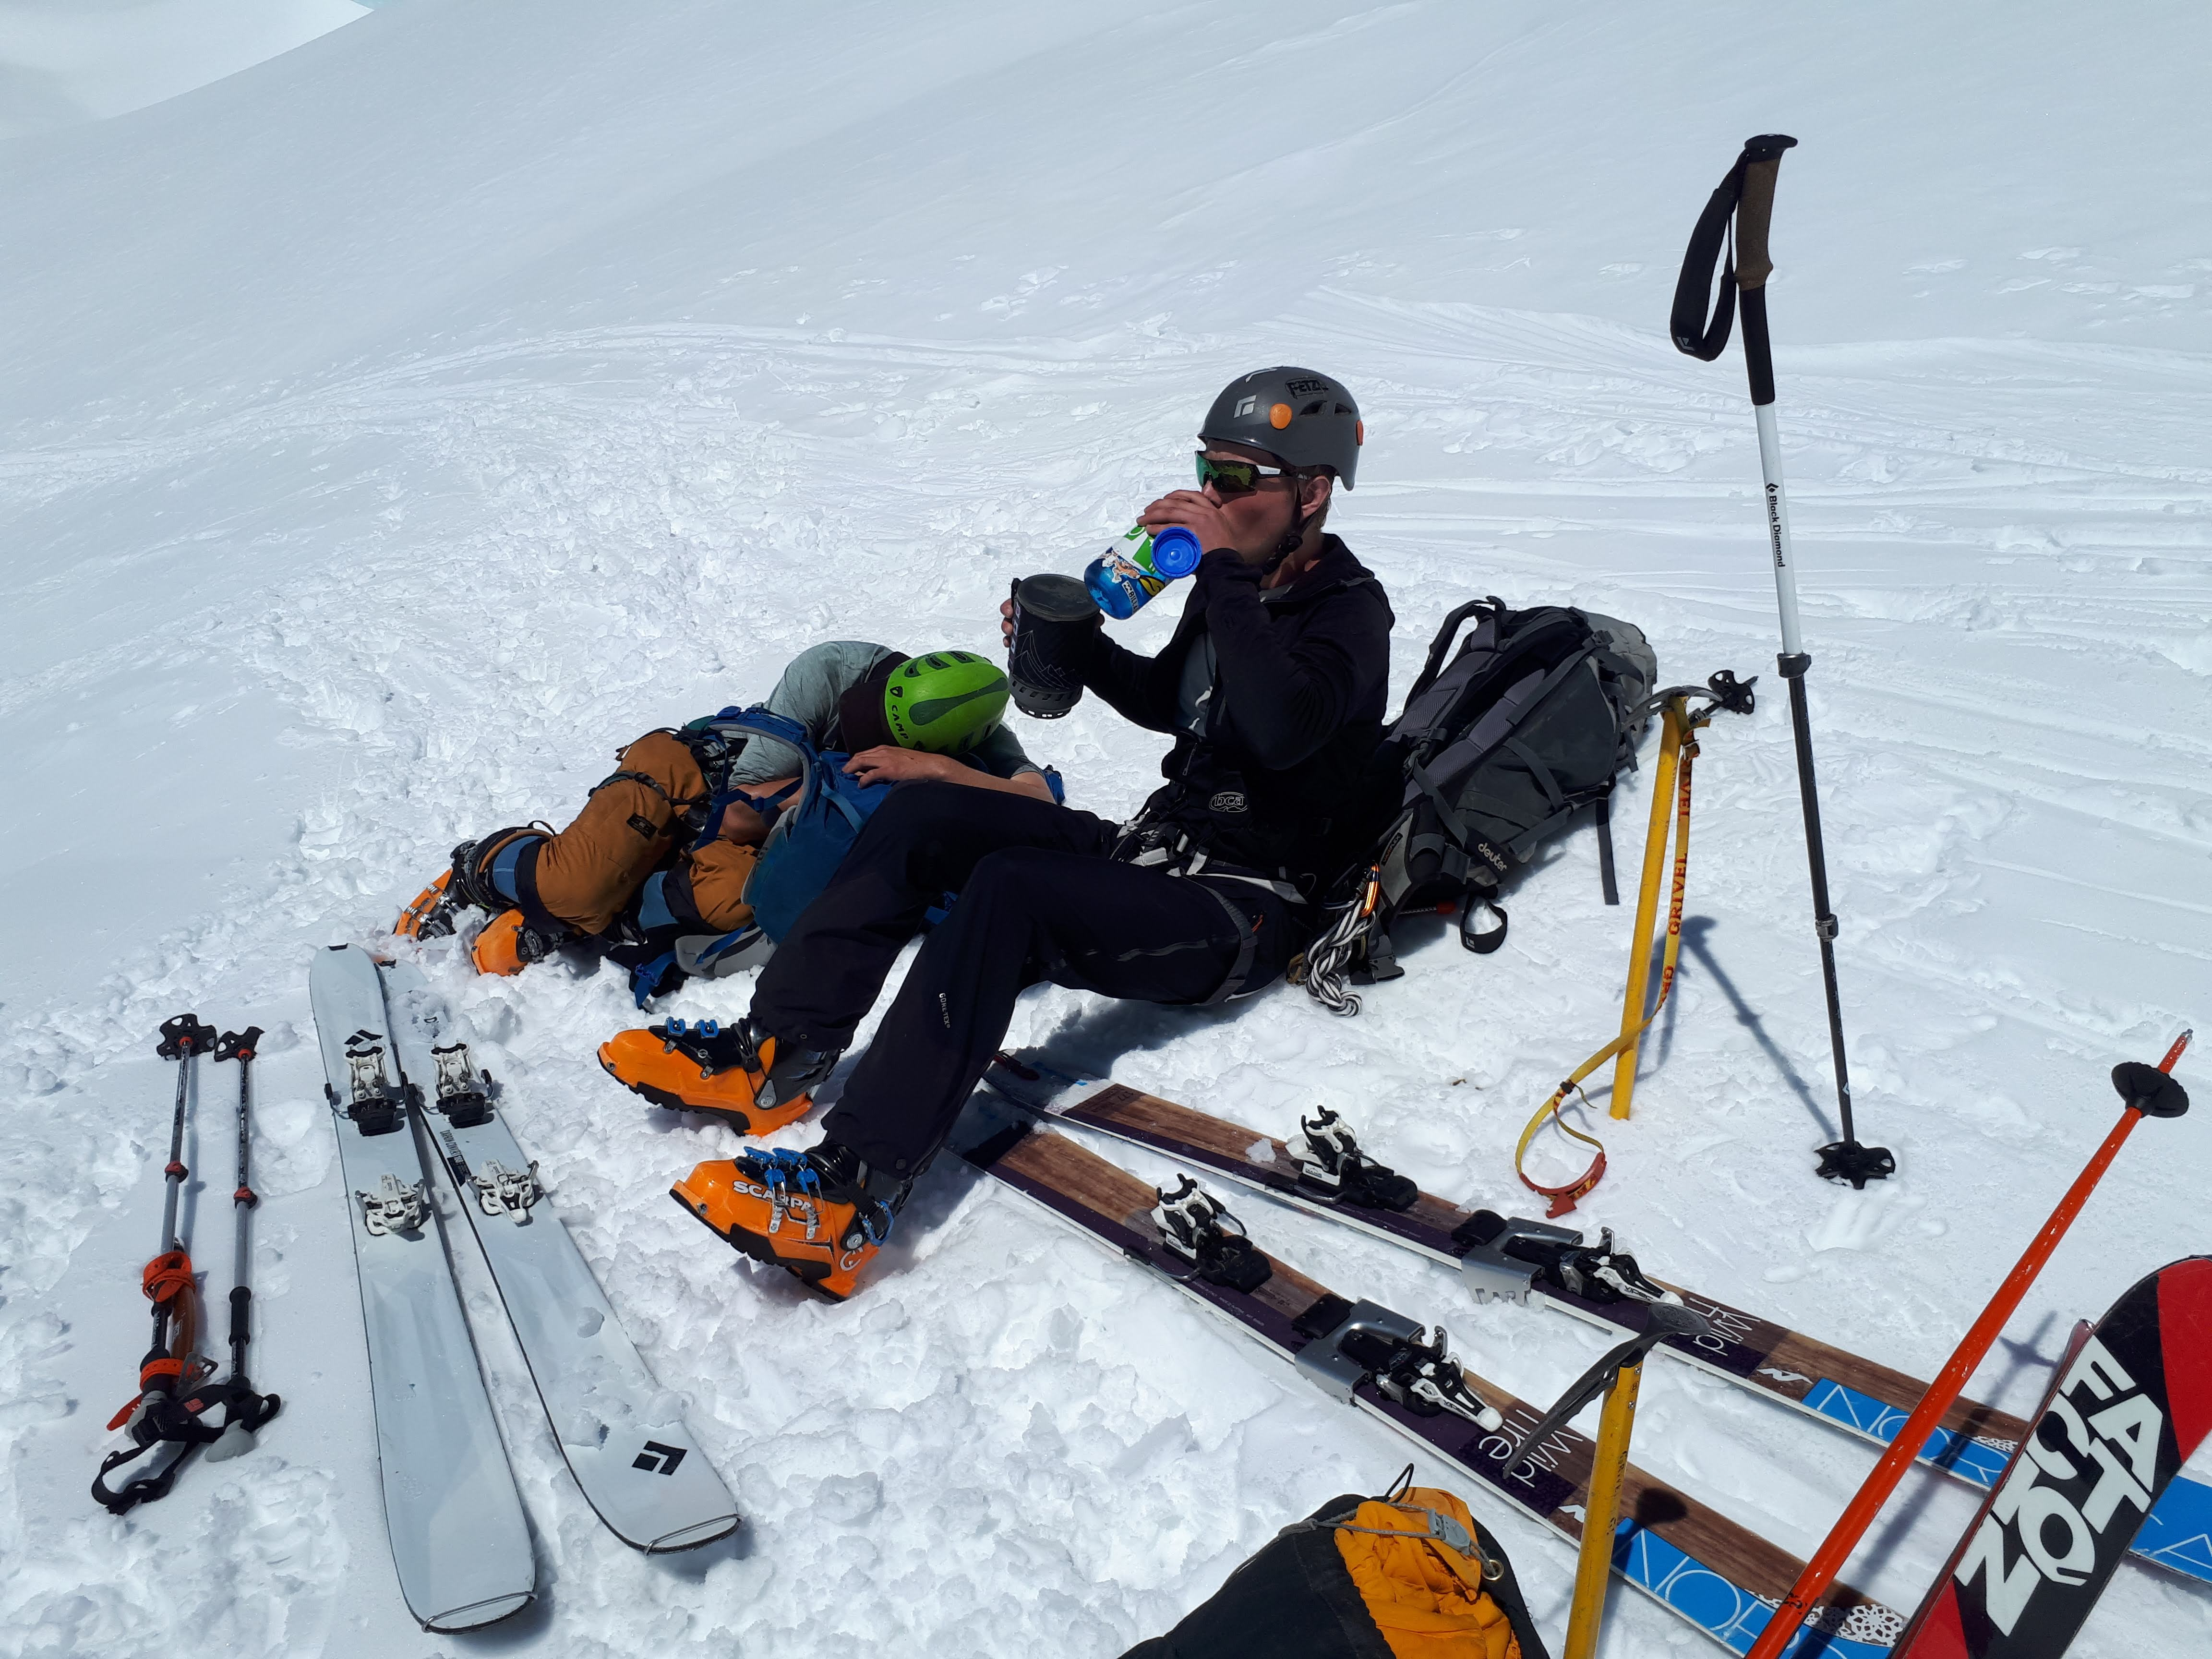 Justin rehydrates while Duncan power naps at 4000m. Photo cred: Tobias Huxol